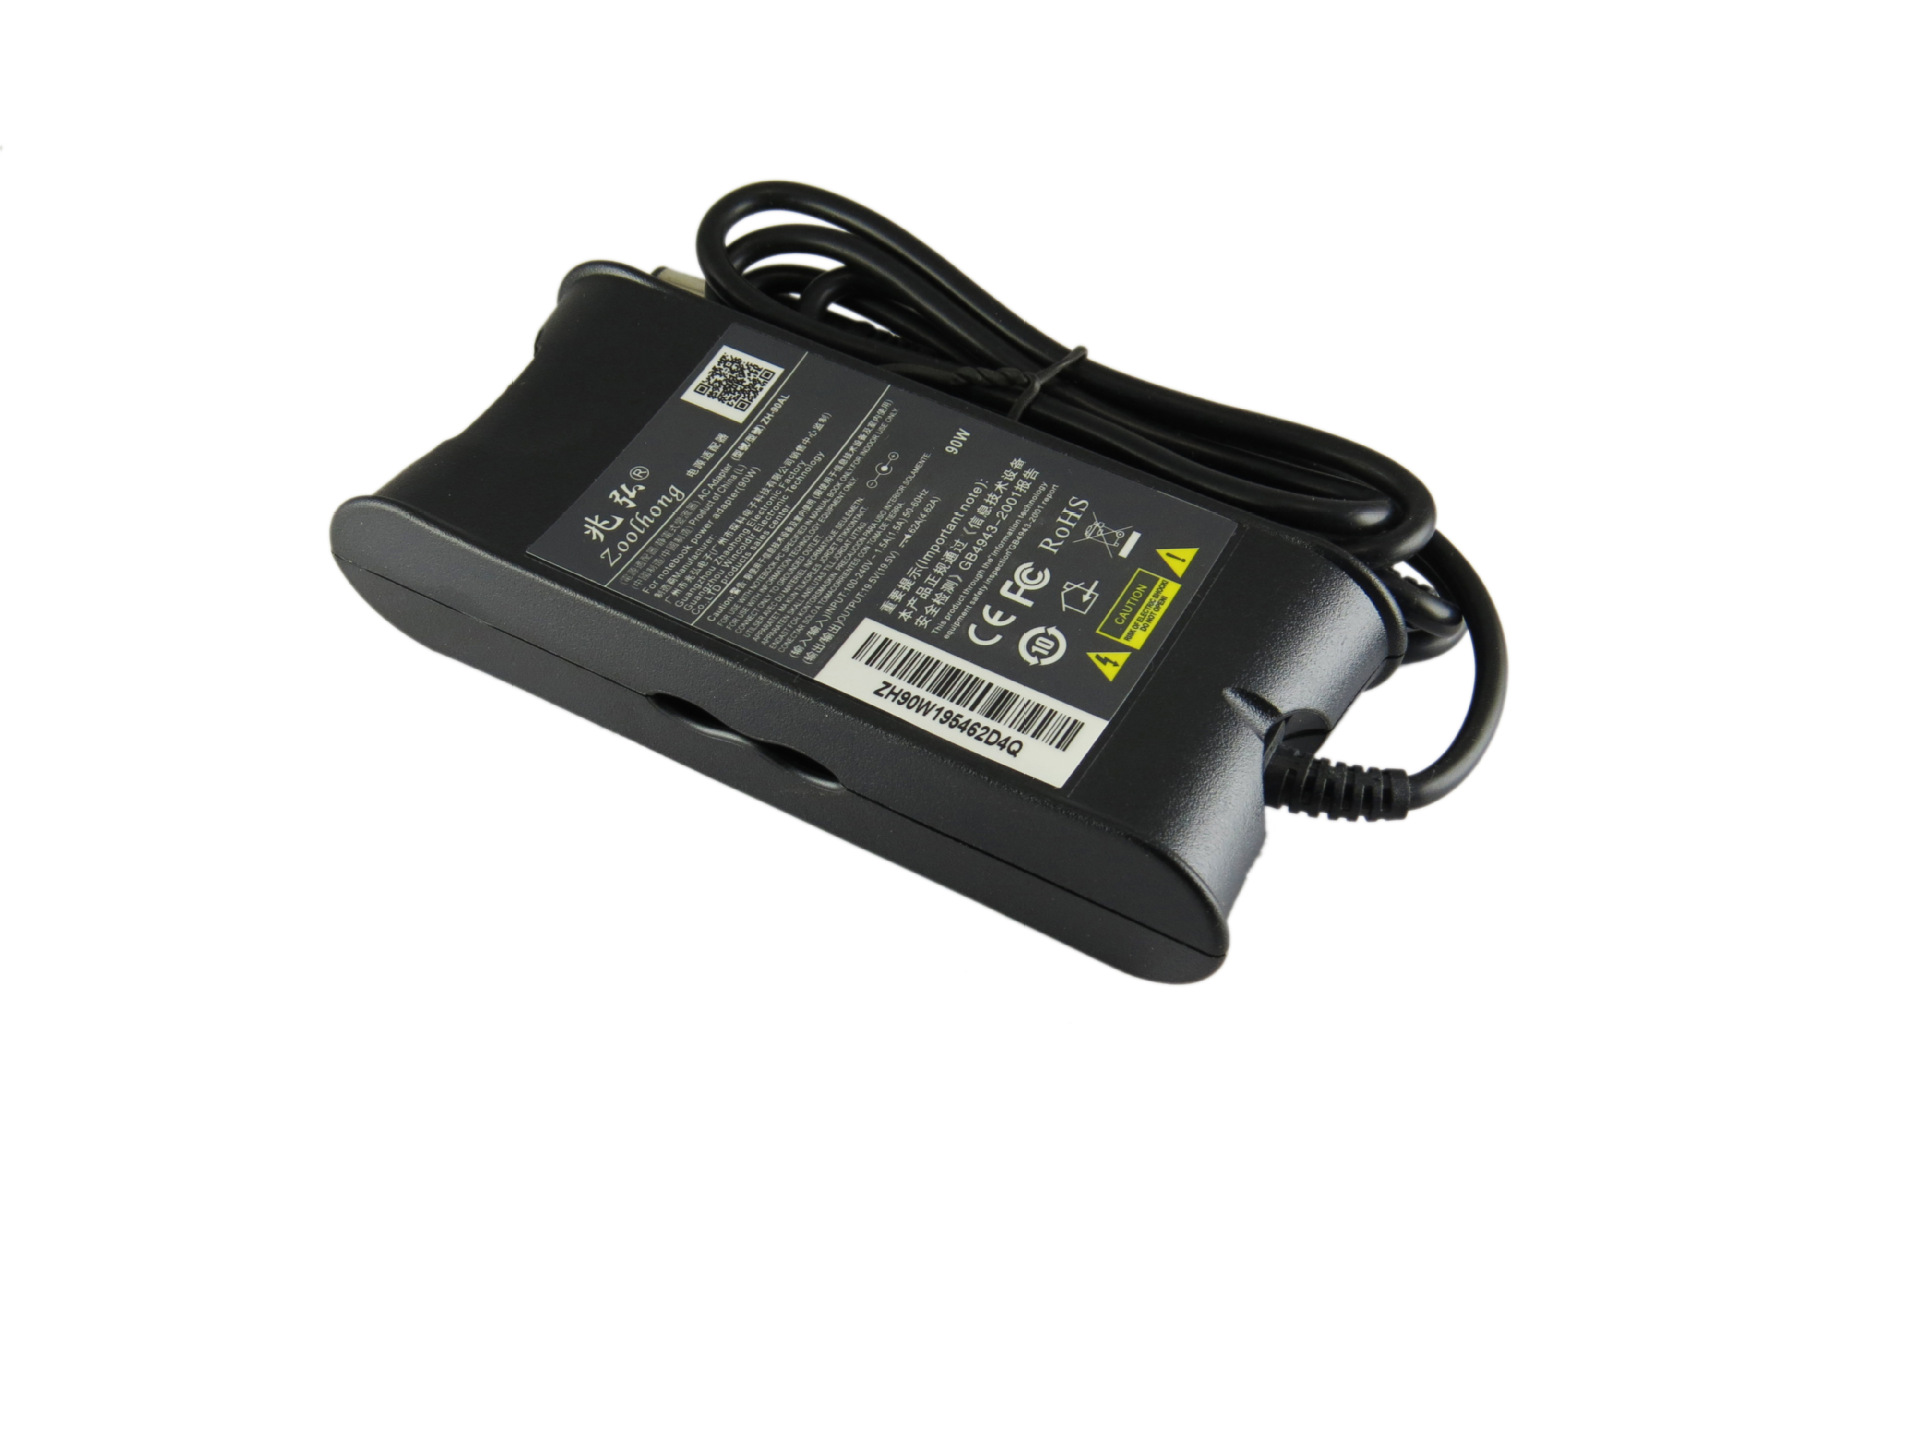 19.5V 3.34A 65W AC Laptop Power Adapter լիցքավորիչ DELL Latitude D500 D505 D510 D520 D530 D531 D600 D610 D620 7.4 մմ * 5.0 մմ